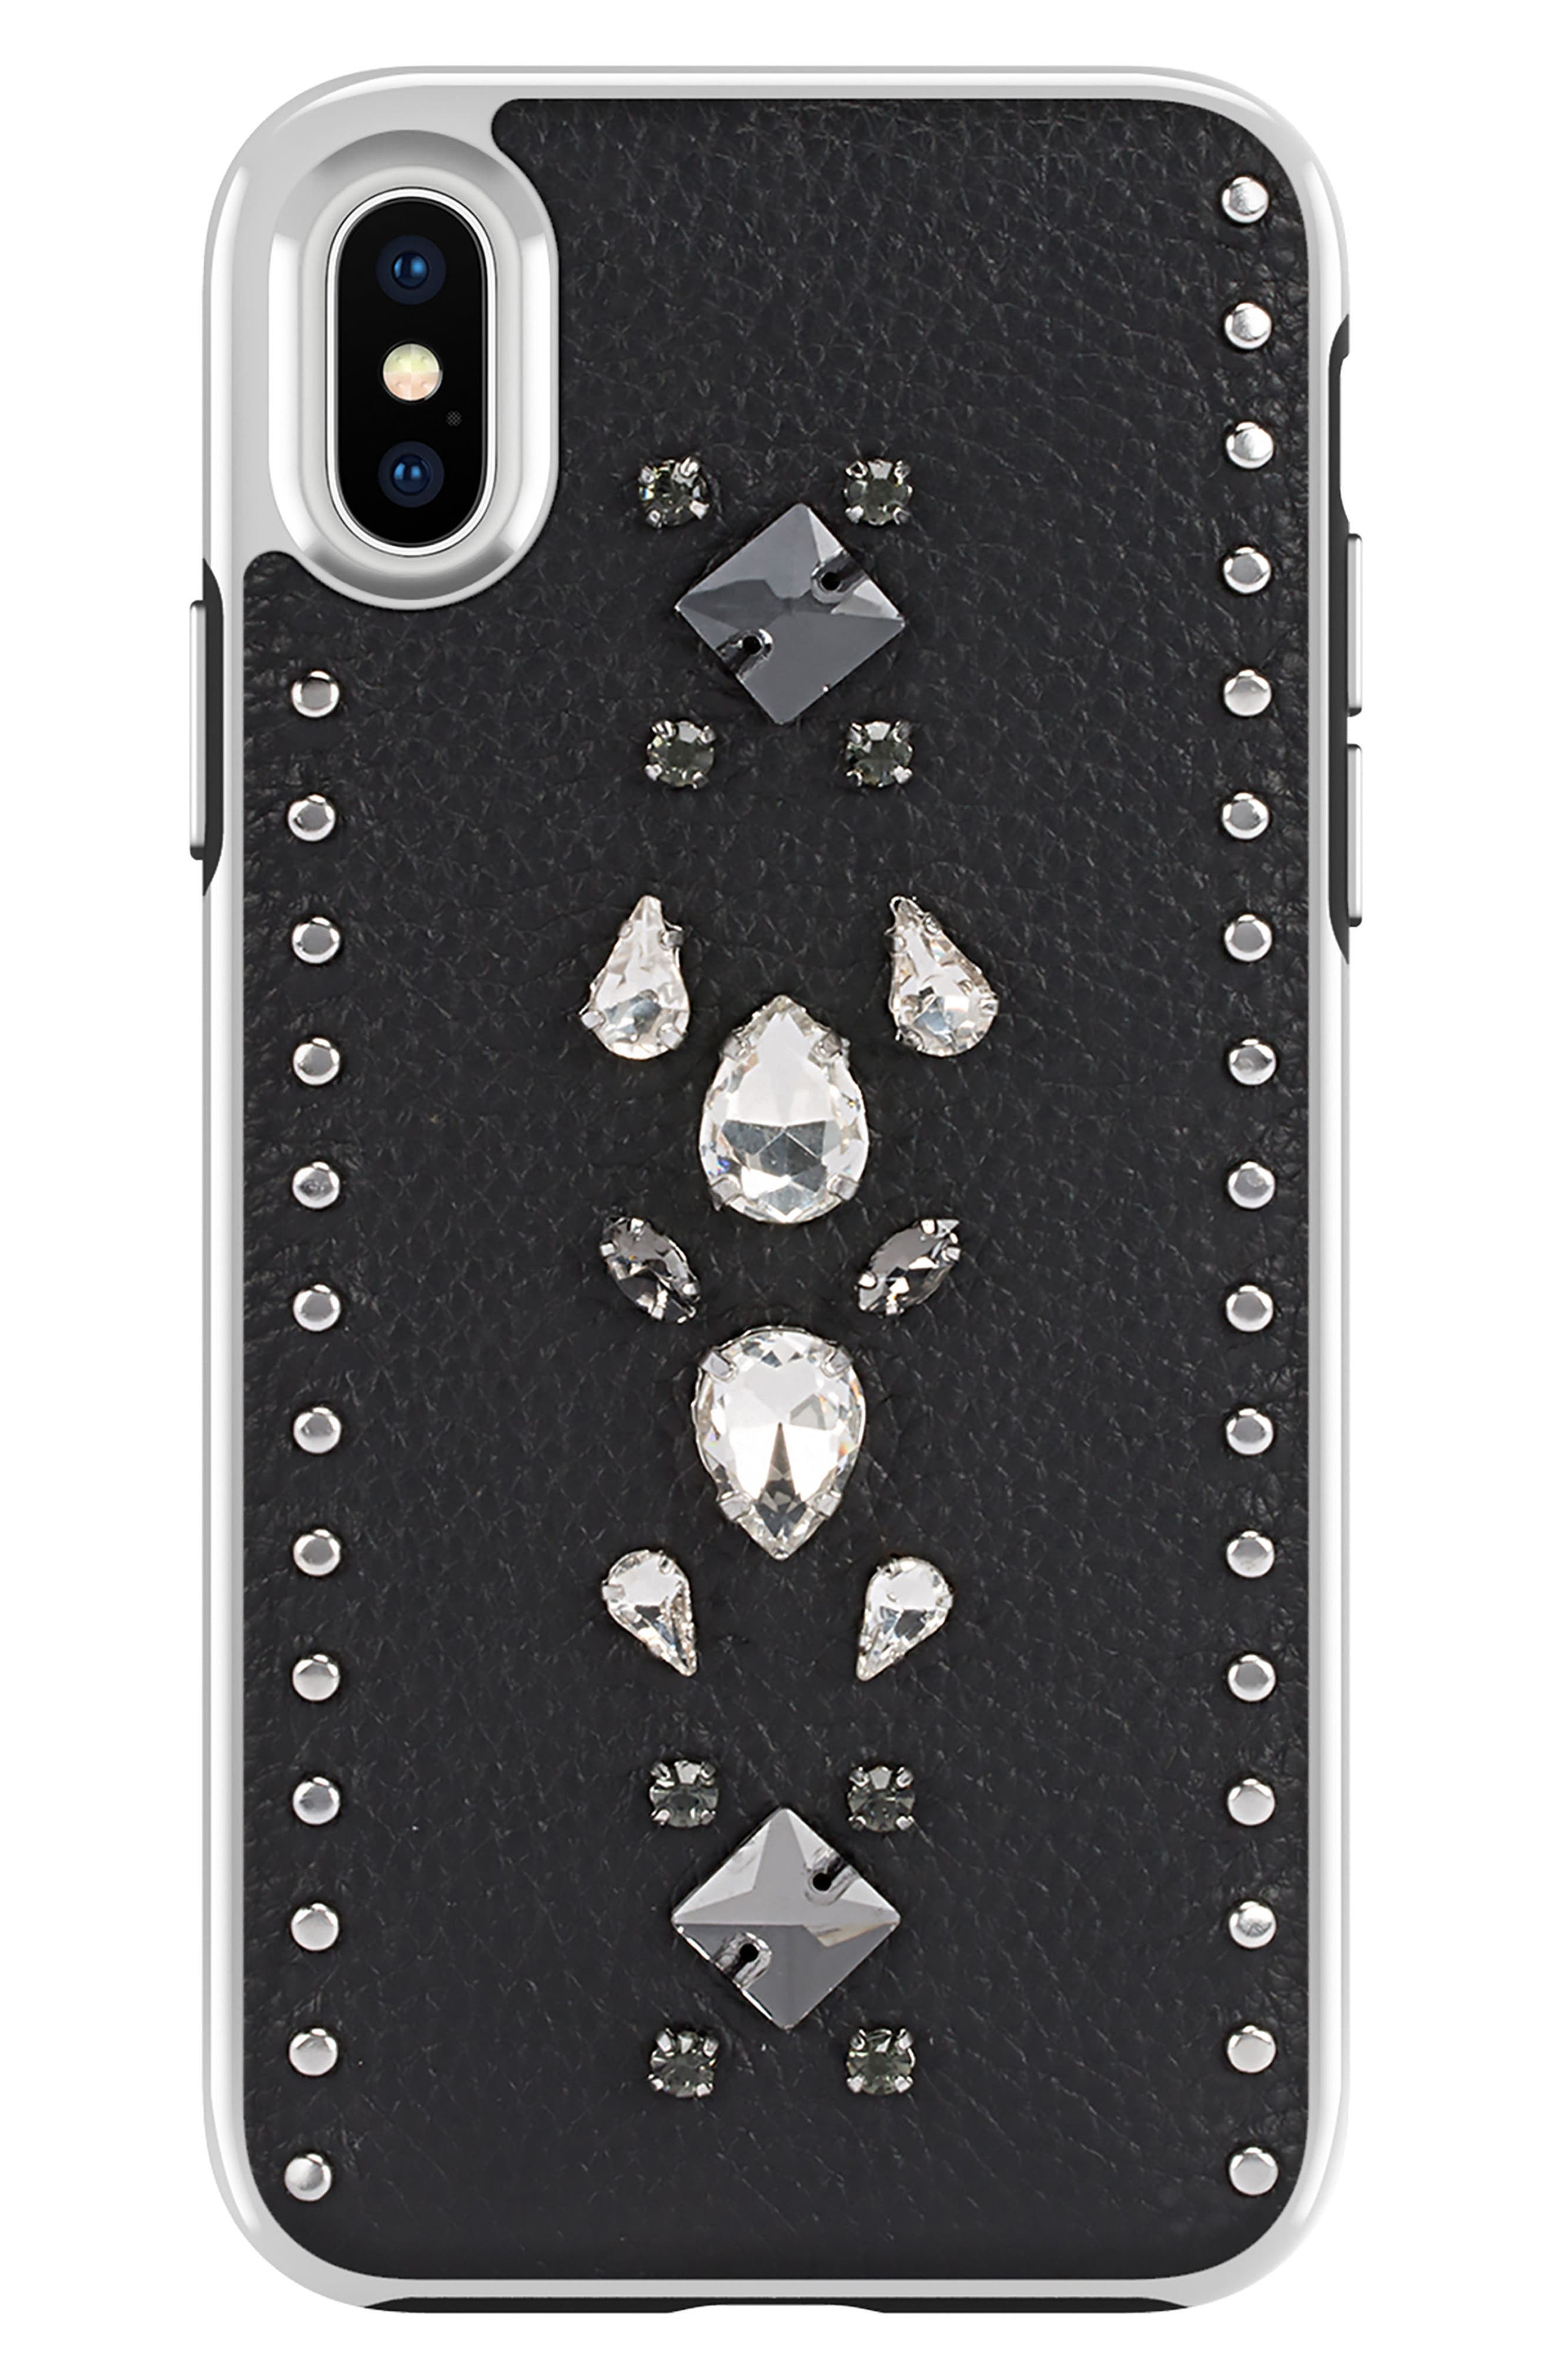 Inlay Jem Leather iPhone X Case,                             Main thumbnail 1, color,                             Multi Gems/ Studs/ Black